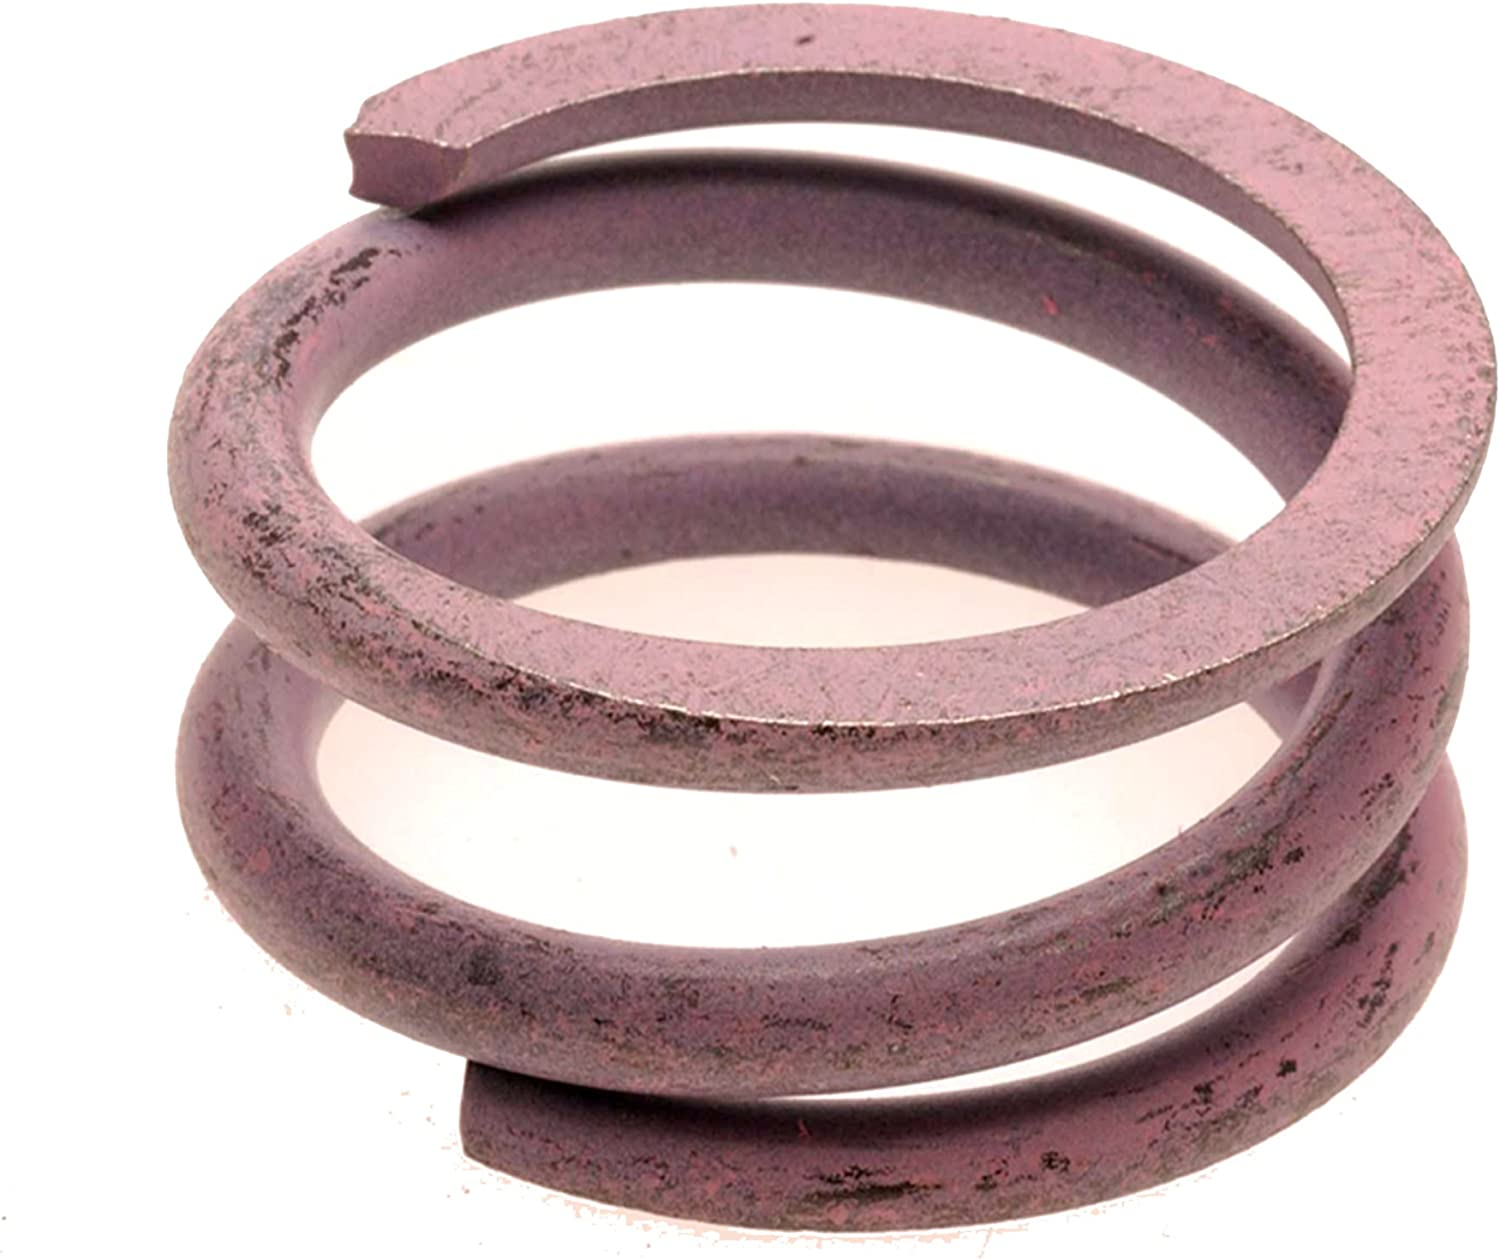 ACDelco 8642539 GM Original Equipment Automatic Transmission Pink 2-4 Band Servo Piston Cushion Spring